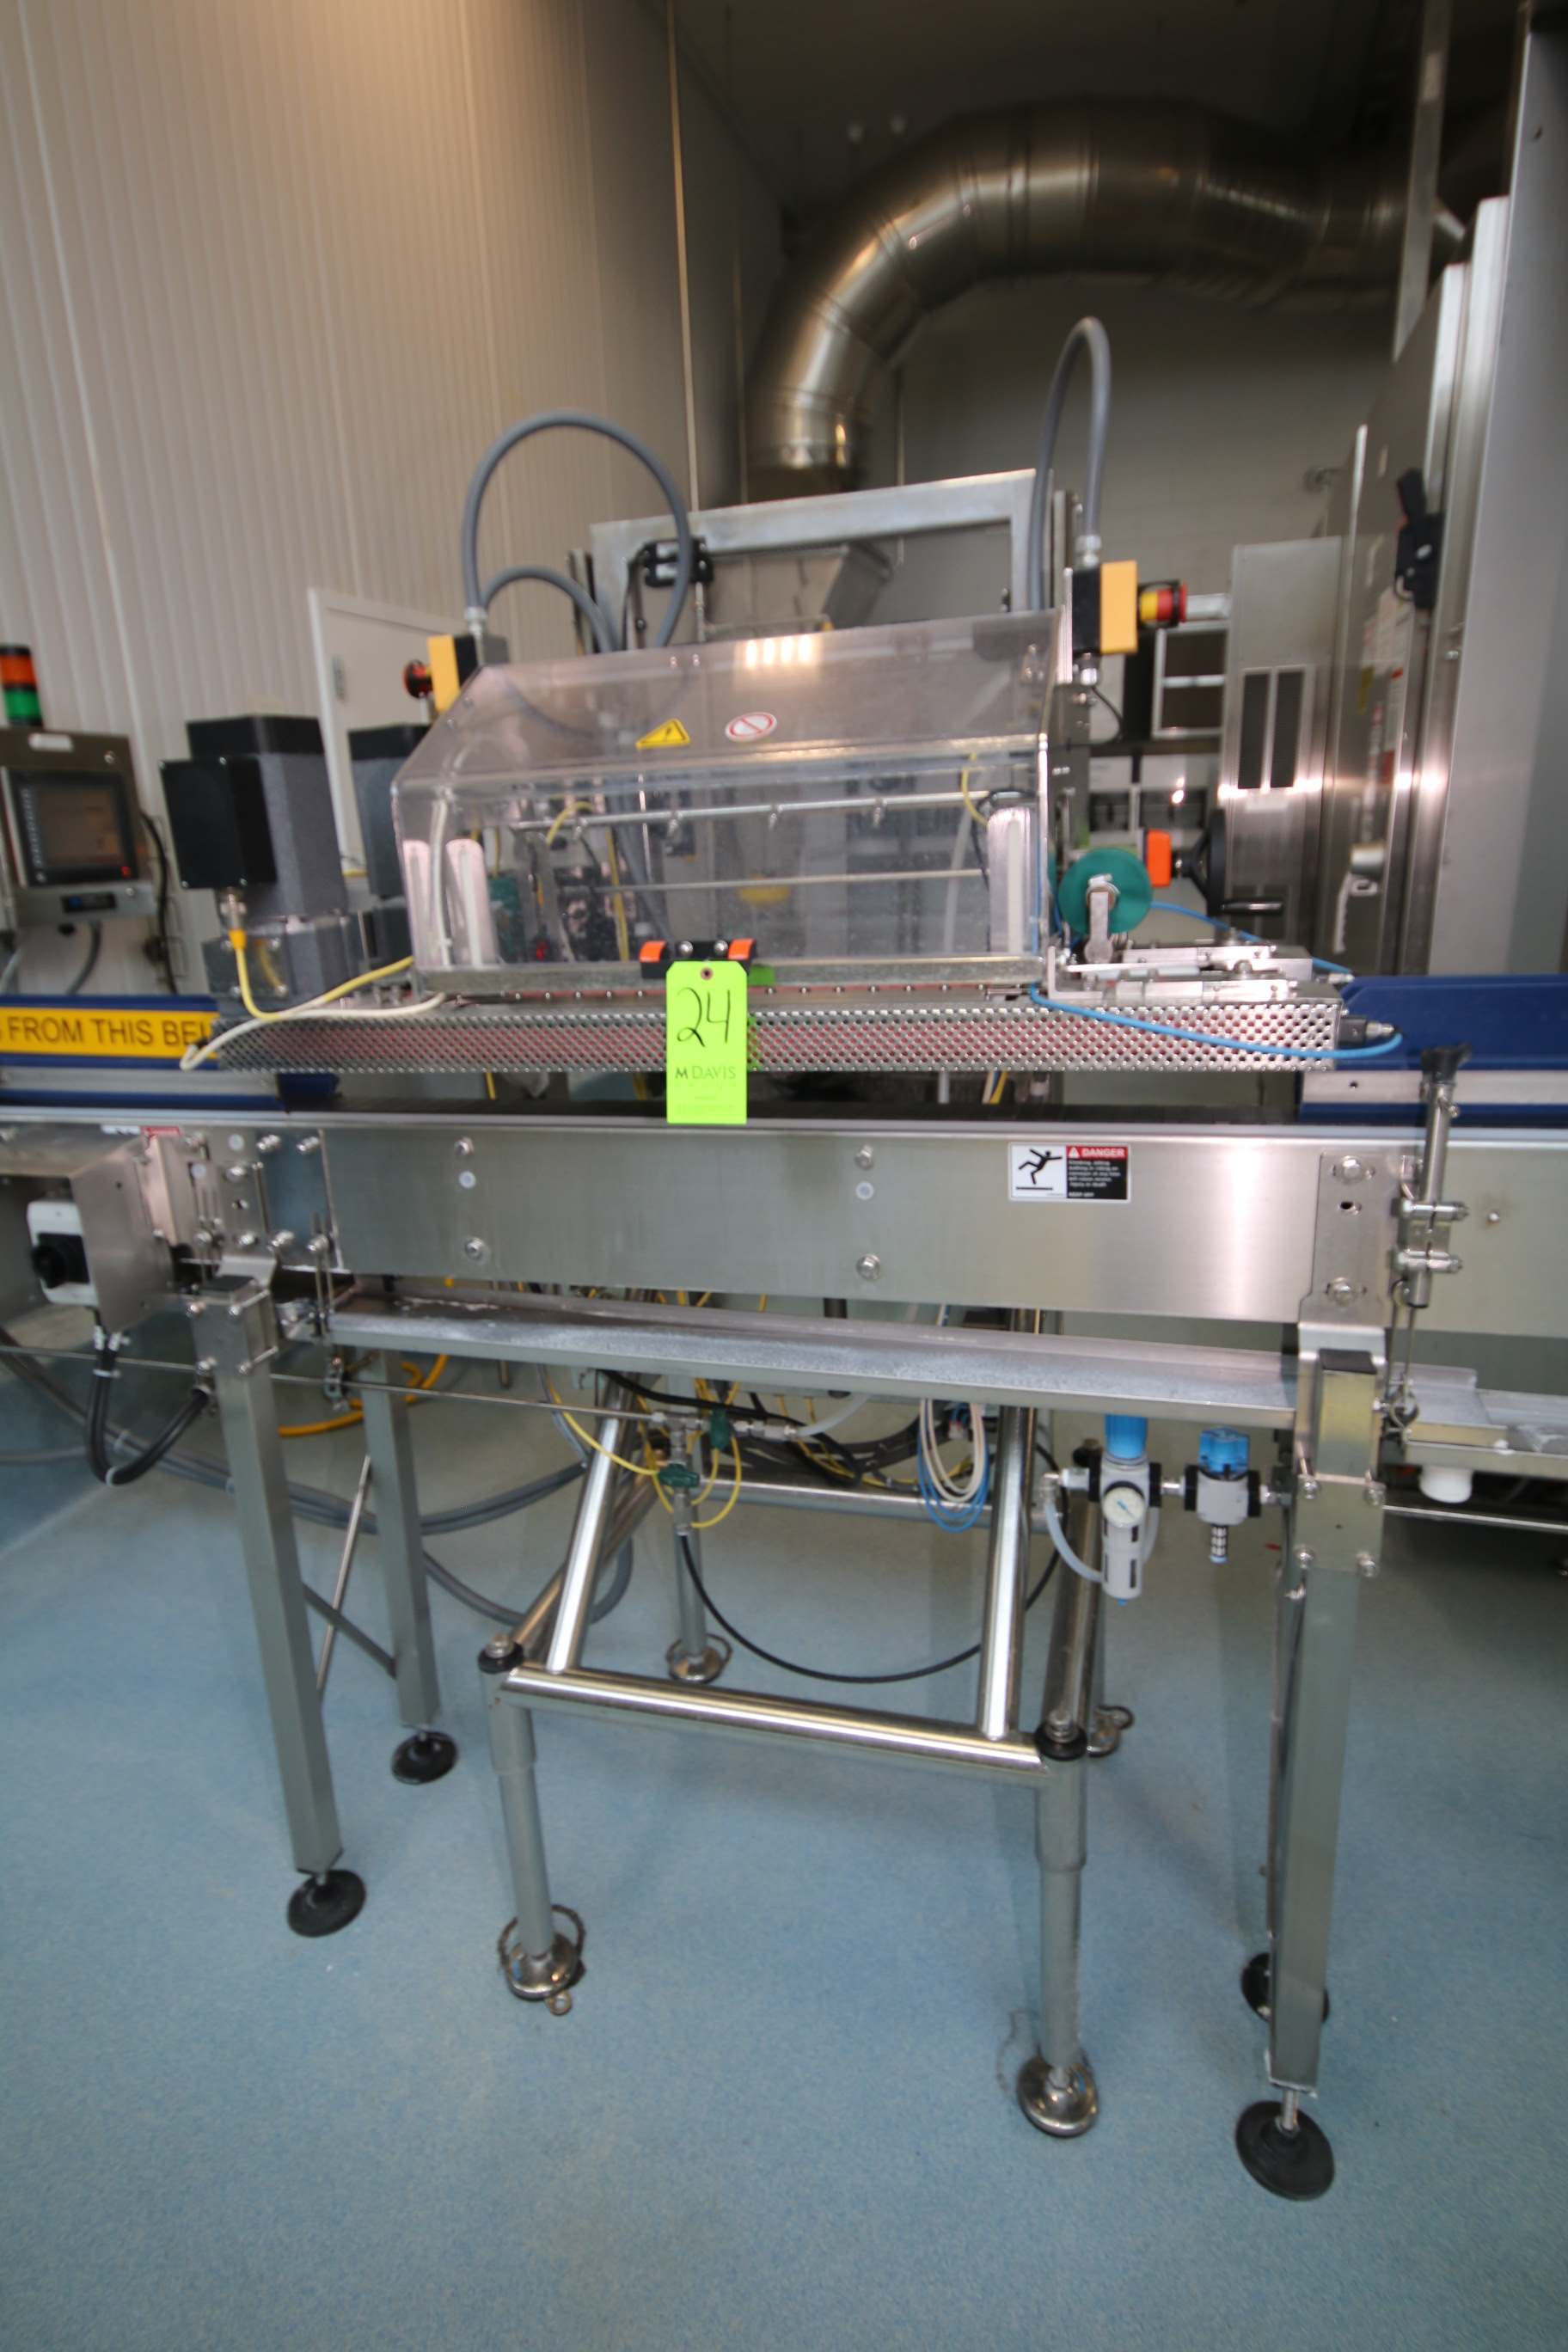 2010 Krones PET-Asept D Aseptic Filling Line- Immediately Available & Going to Auction